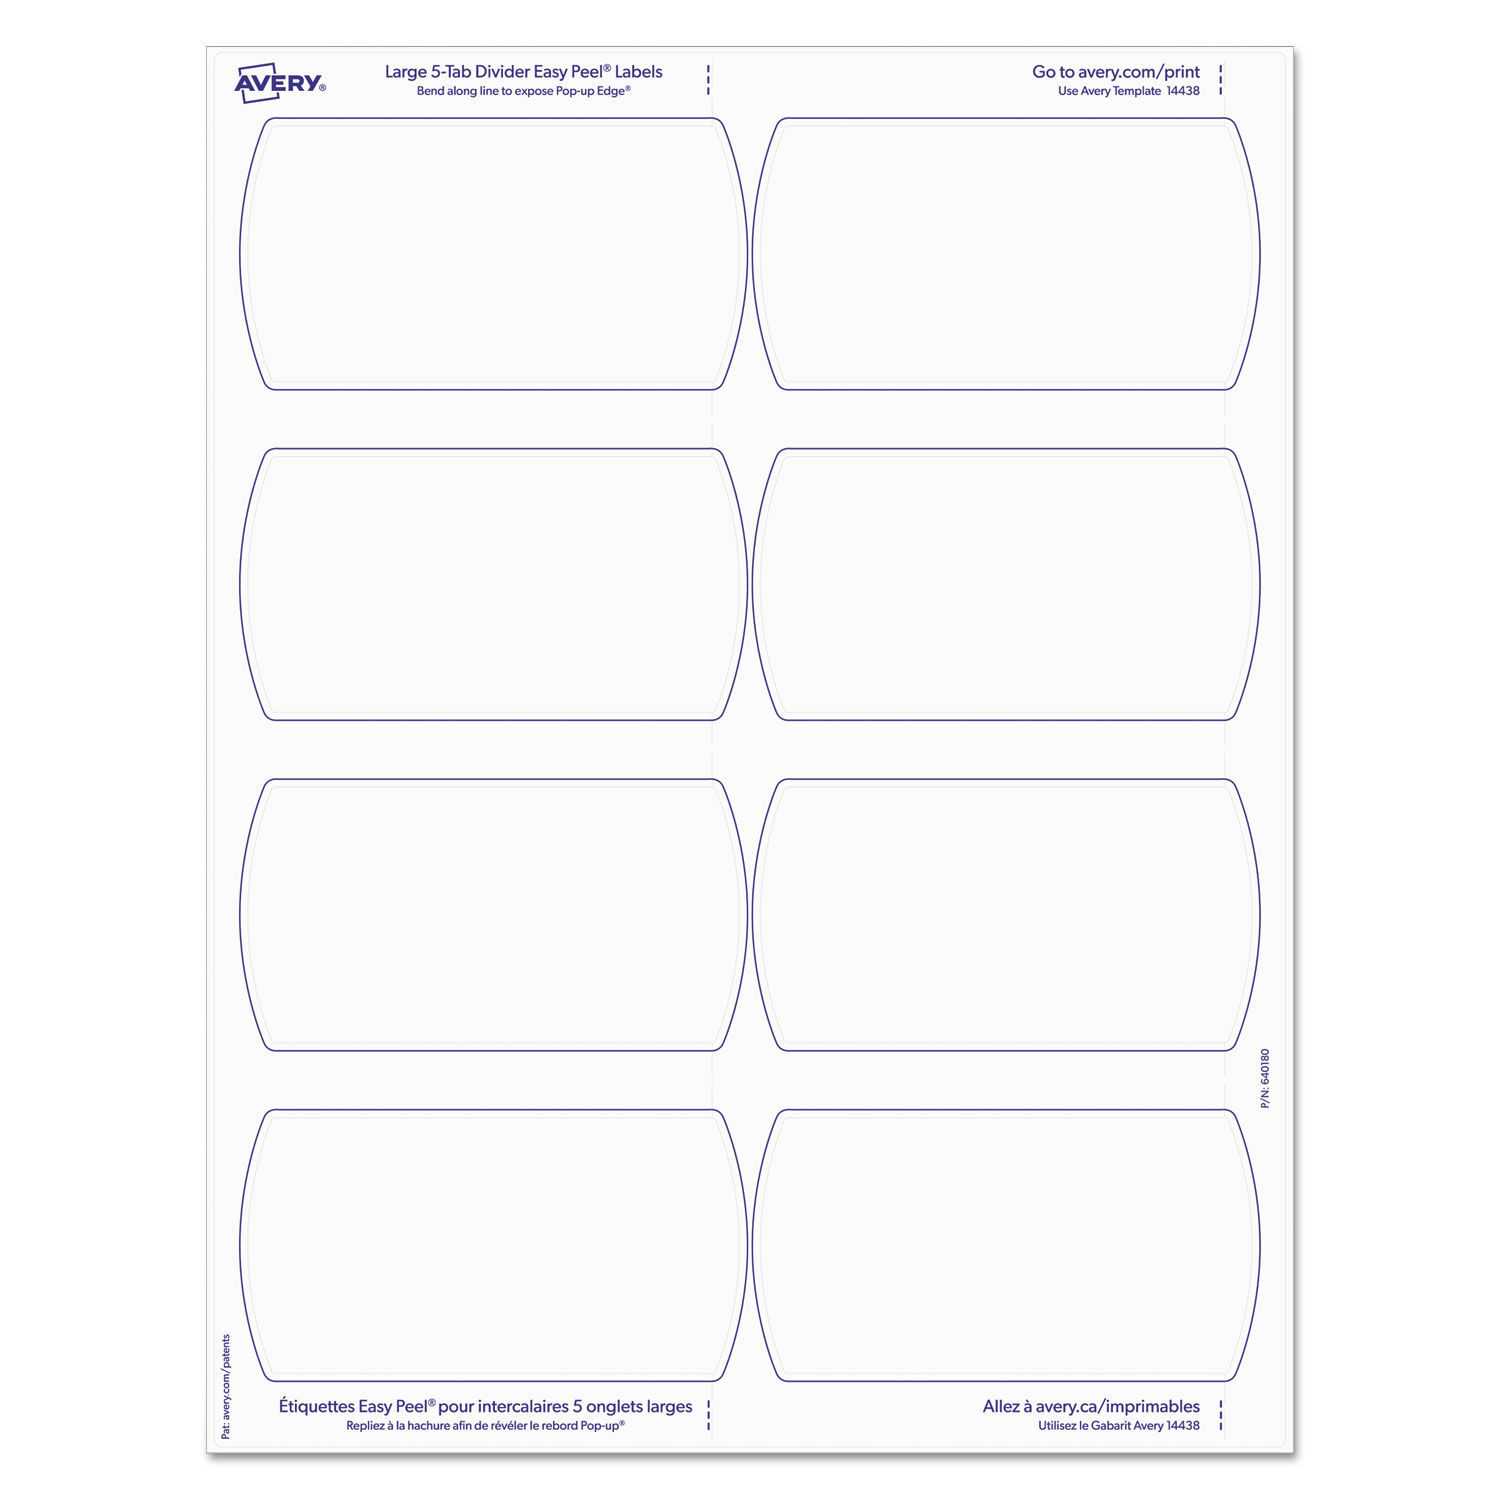 image regarding Divider Tabs Printable named Large Tab Printable Significant White Label Tab Dividers, 5-Tab, Letter, 20 for every pack